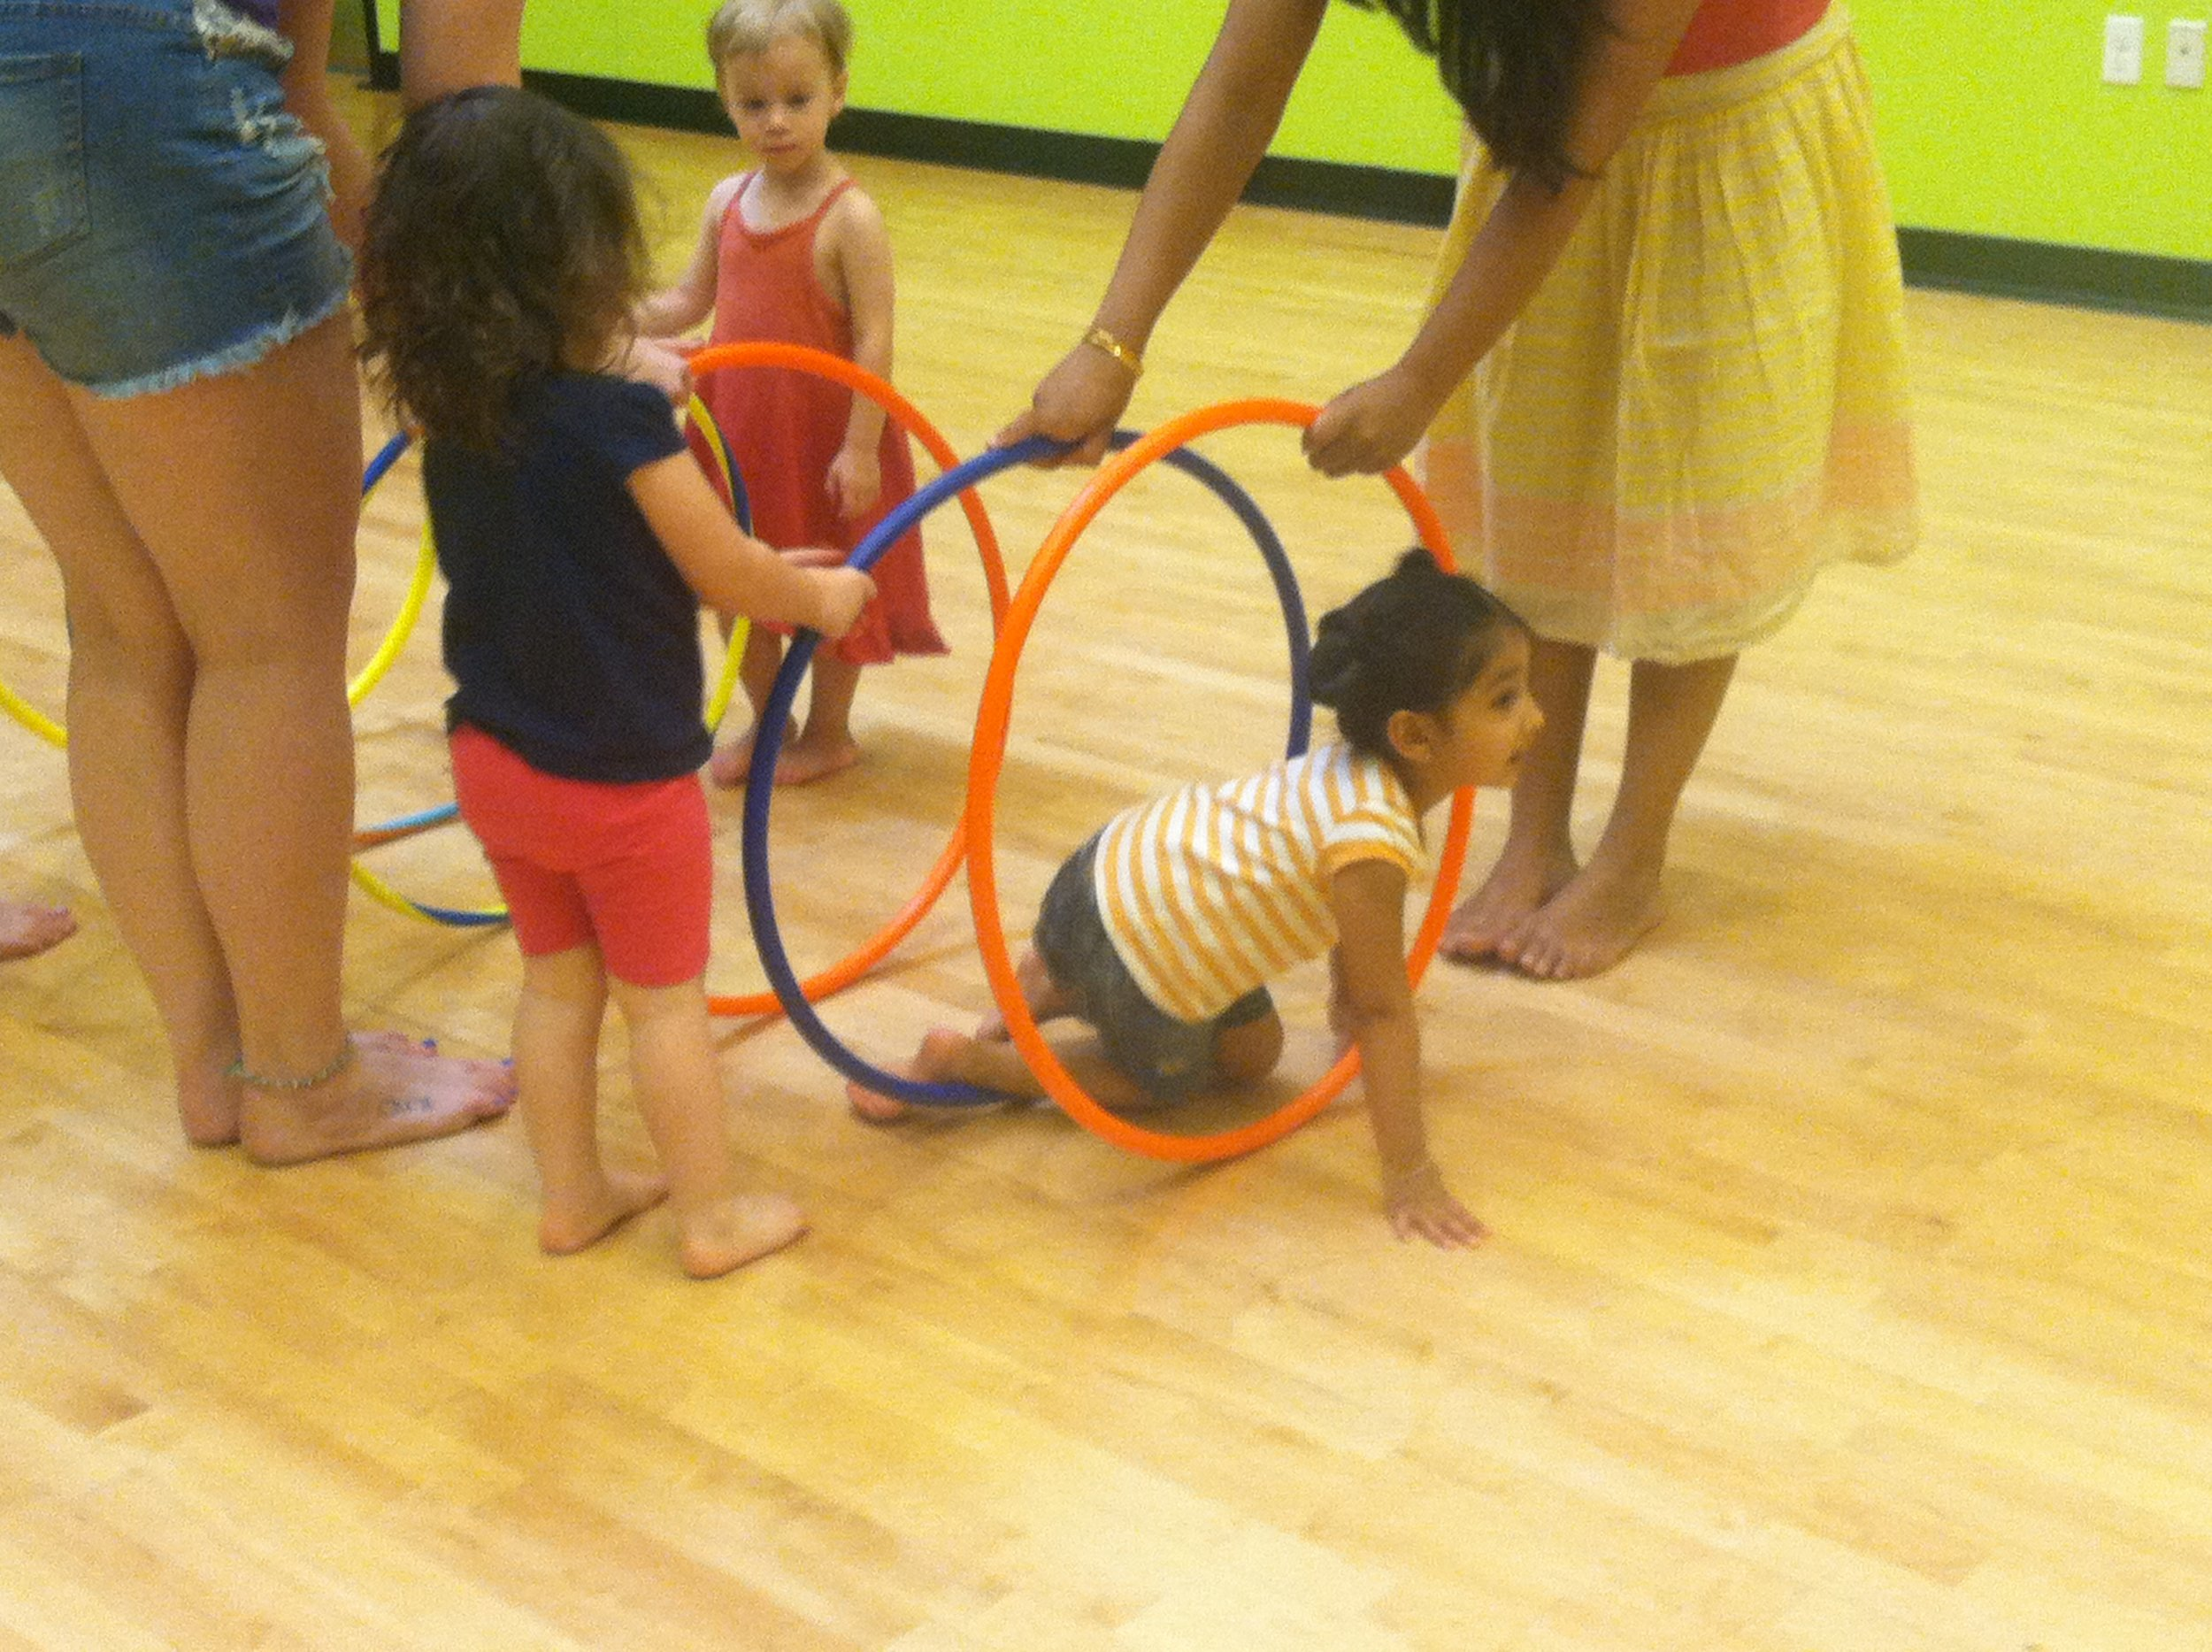 Tuesdays 10:00-10:45am   Ages walking to 3 years, with a caregiver  @ Rast Ballet, 1803 W Byron St, 2nd Floor